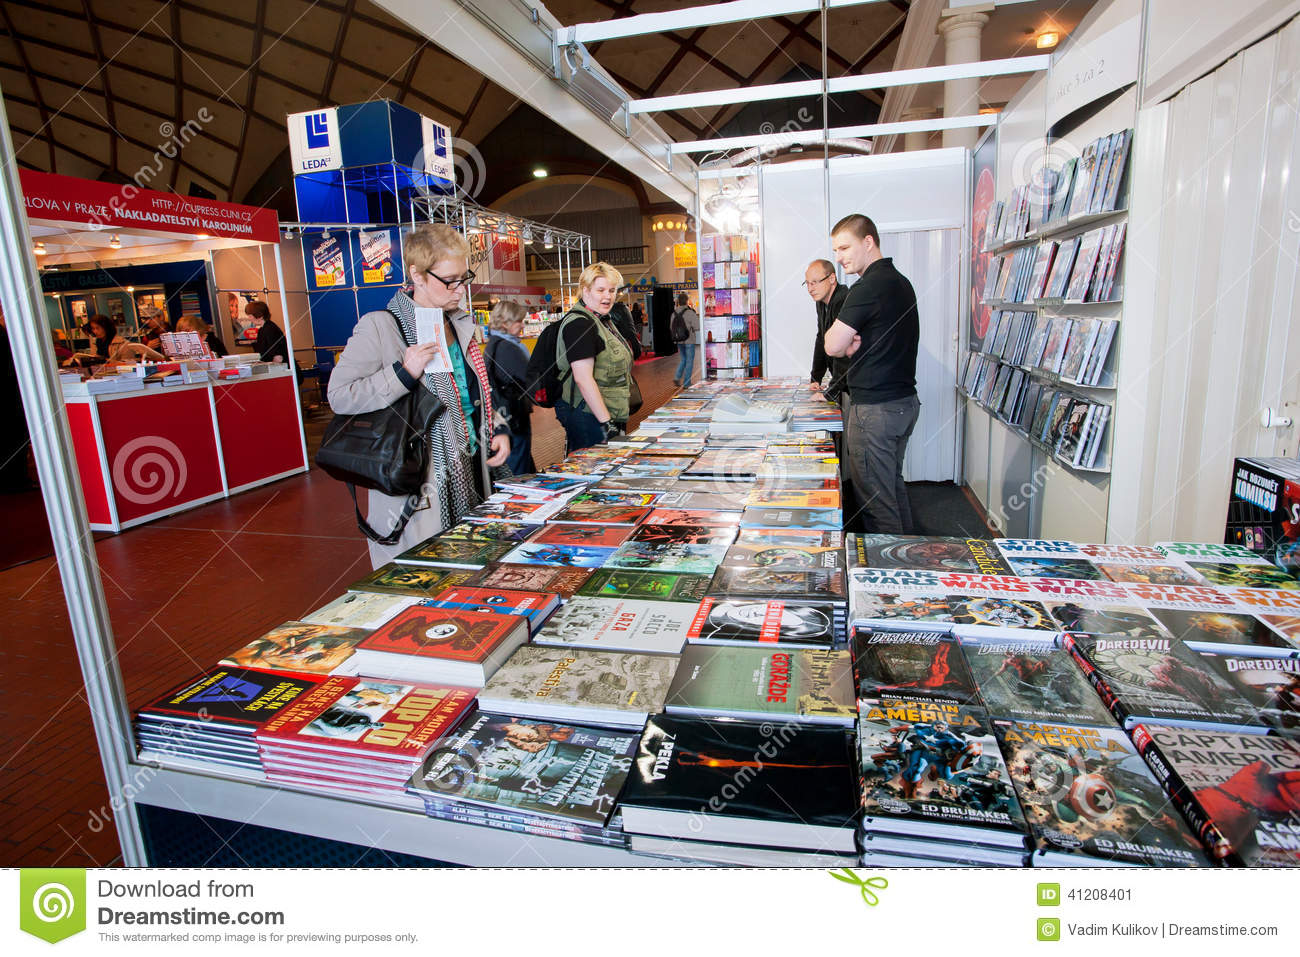 People look at comic books and graphic novels